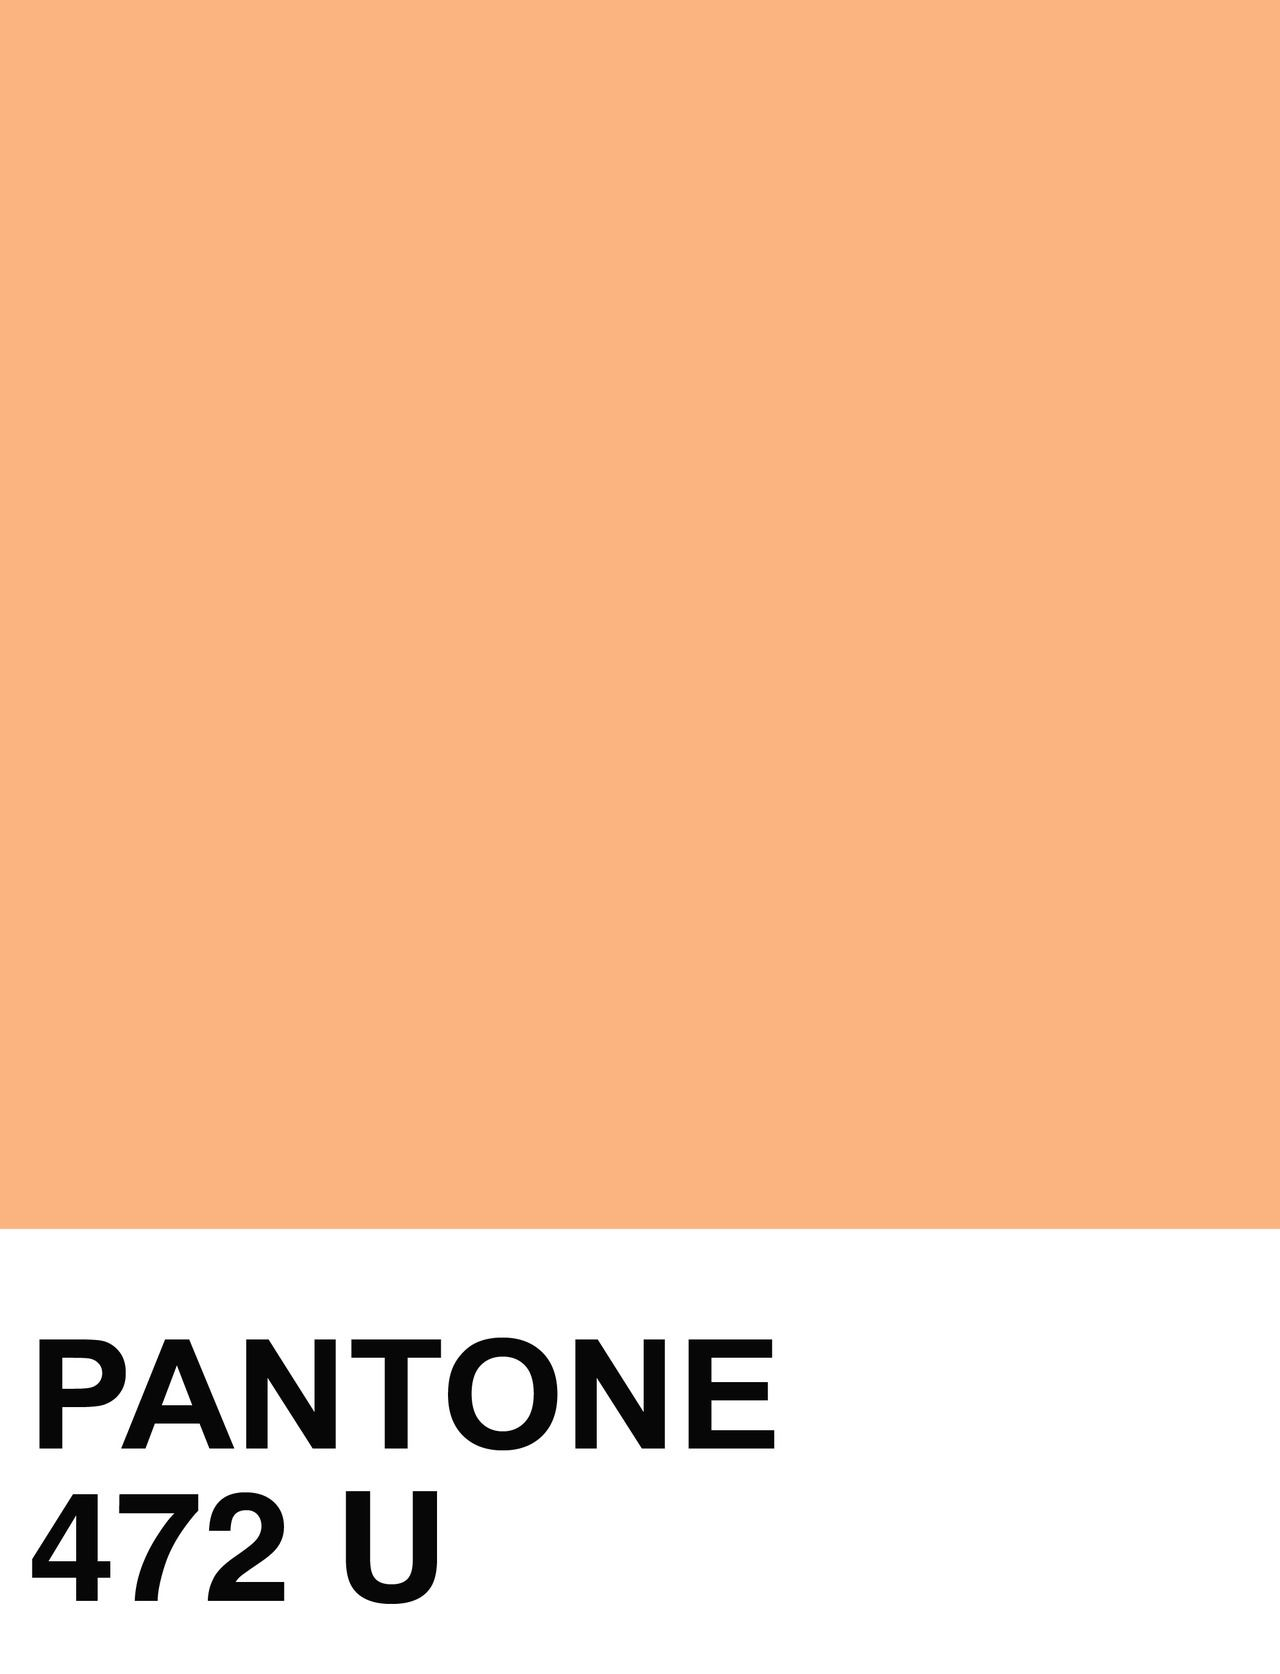 Color 2014 freesia on pinterest pantone yellow and pantone colours - Find This Pin And More On Pantone By Ilzeba